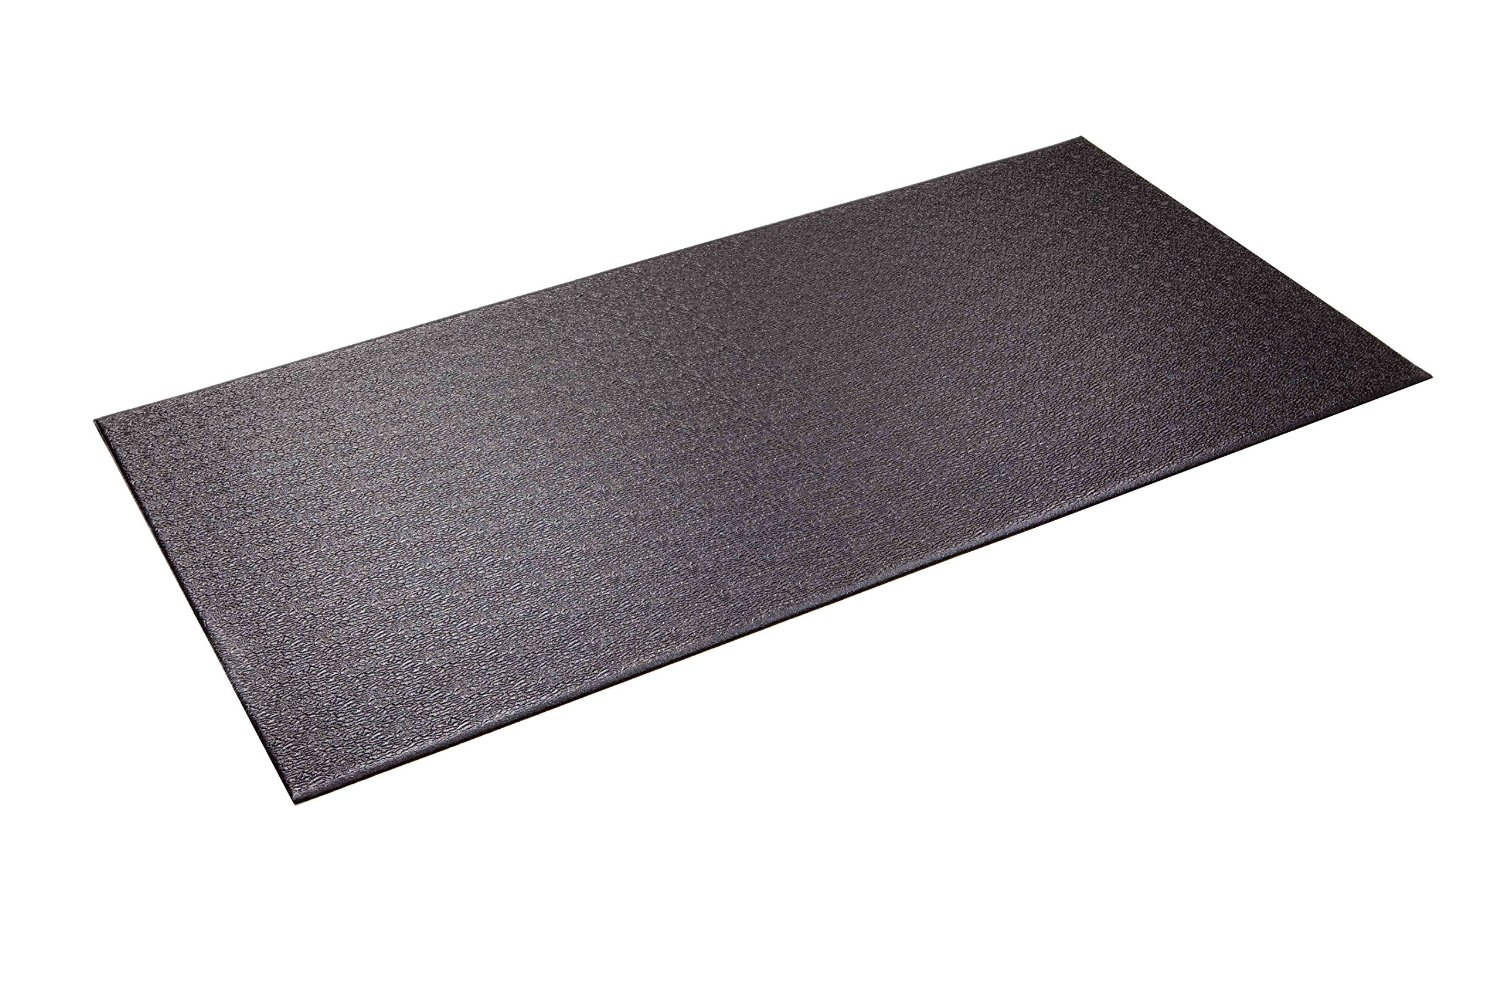 "Supermat Heavy Duty P.V.C. Mat For Cardio Fitness Products (2.5"" x 5"")"